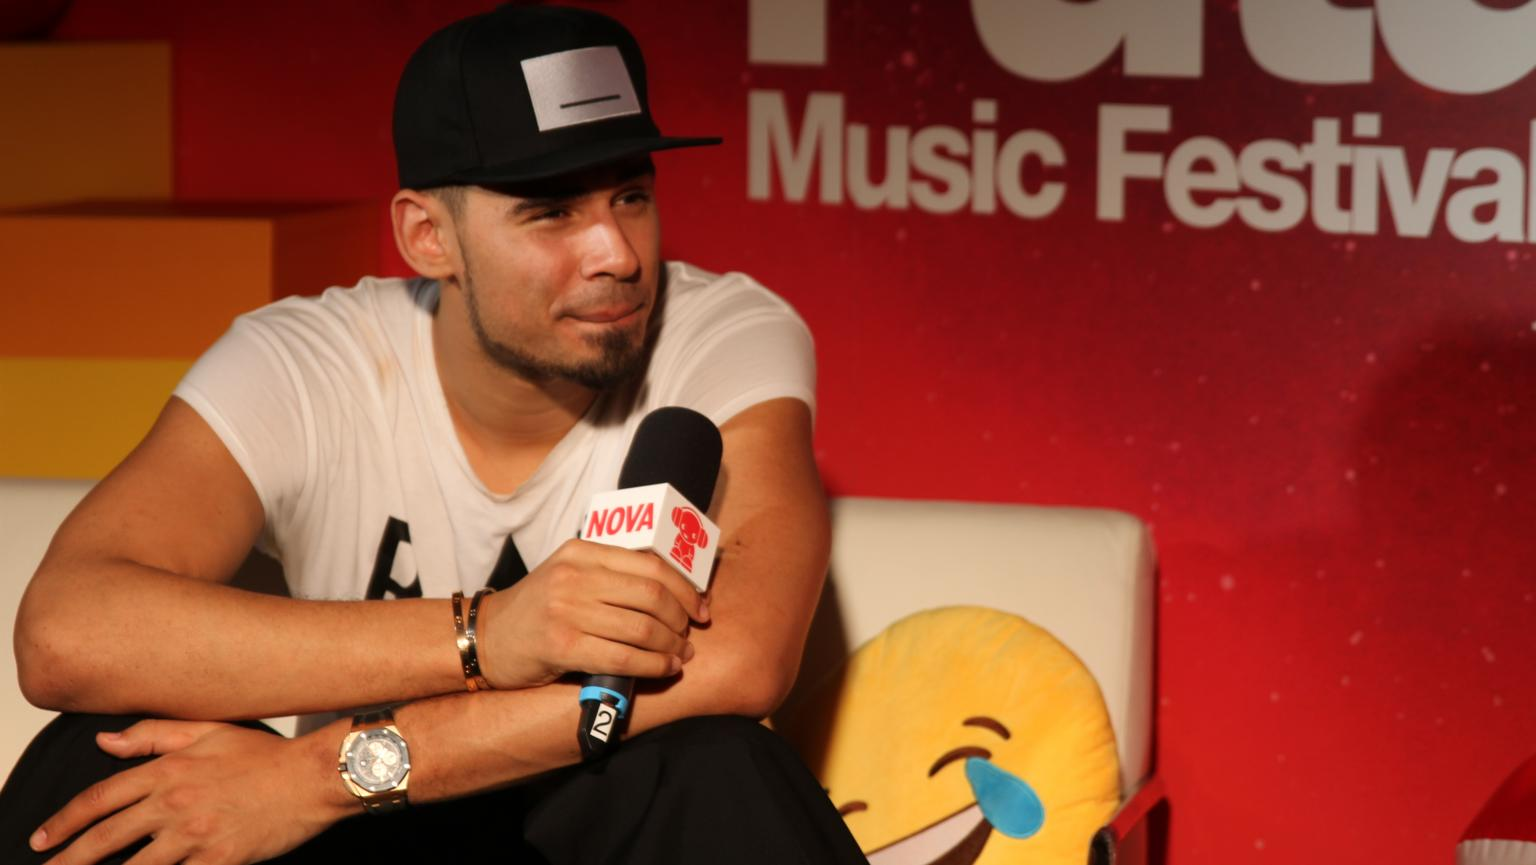 Afrojack Rushes From Stage to Future Music Festival